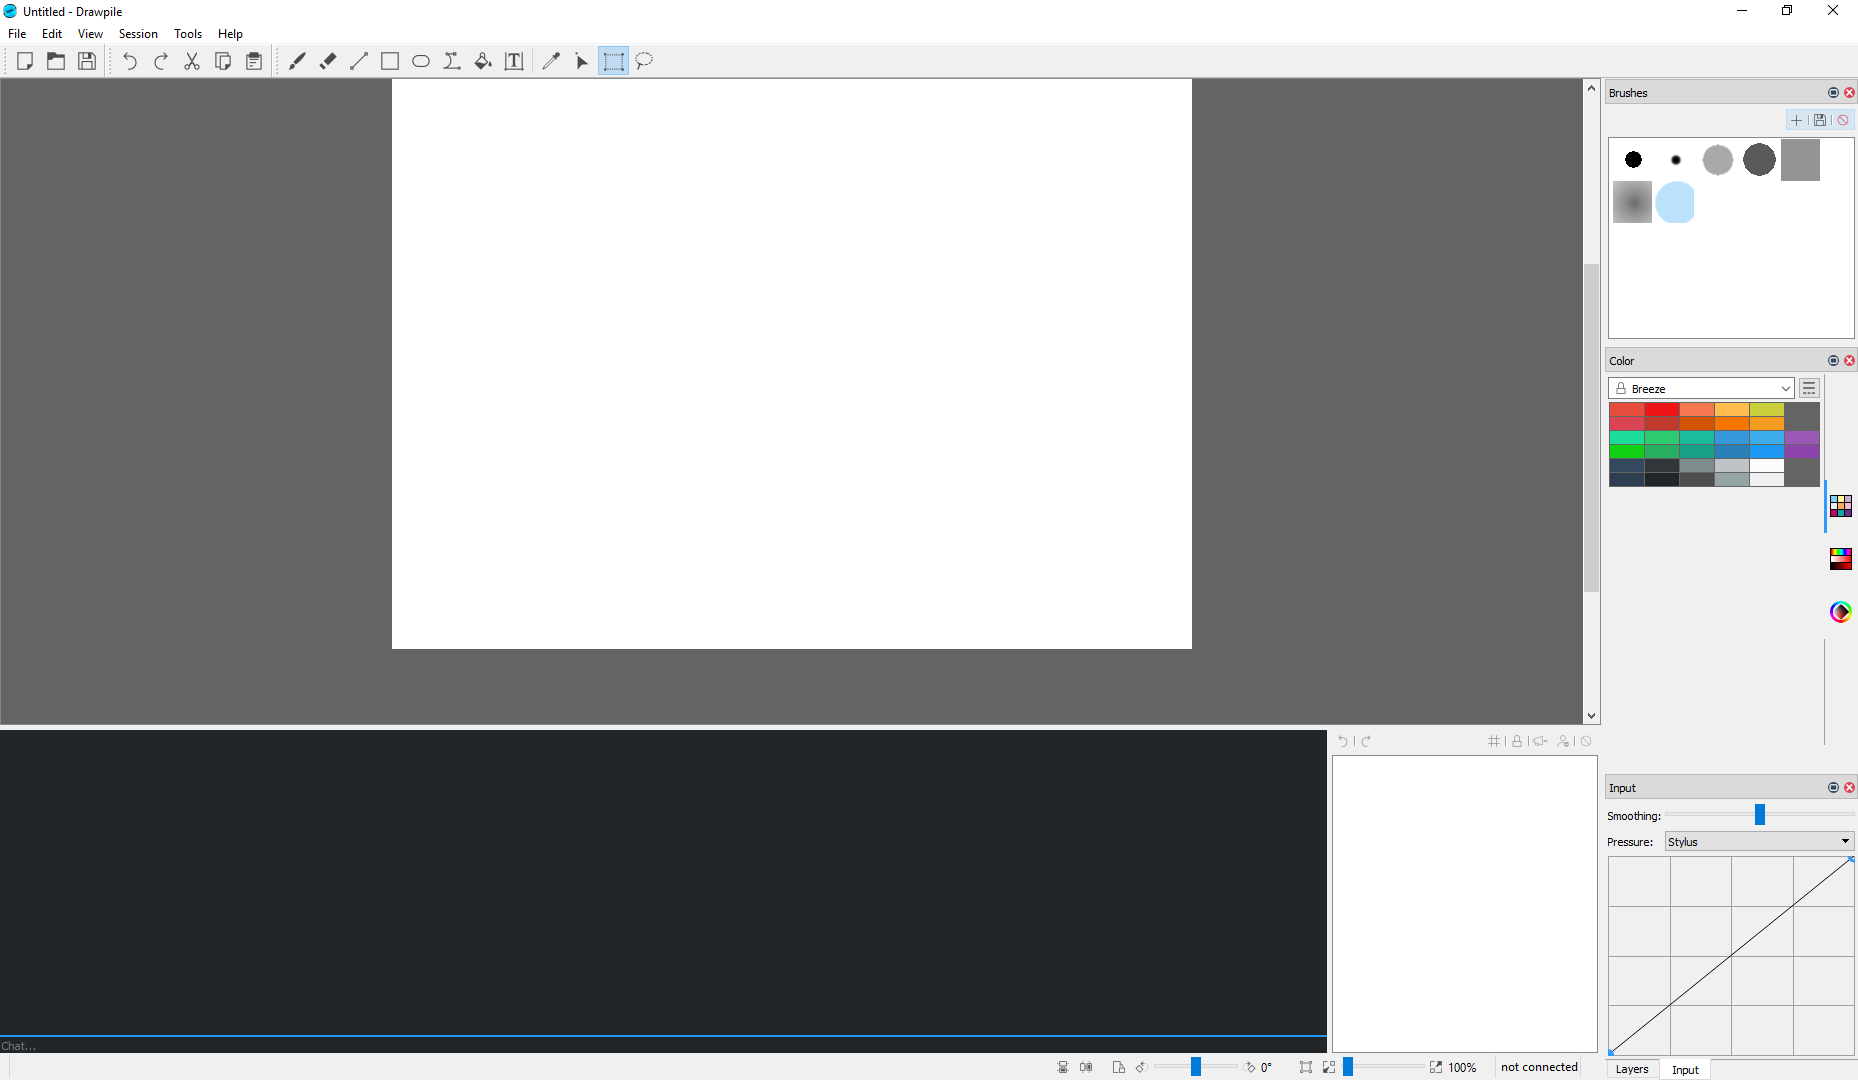 A blank Drawpile window